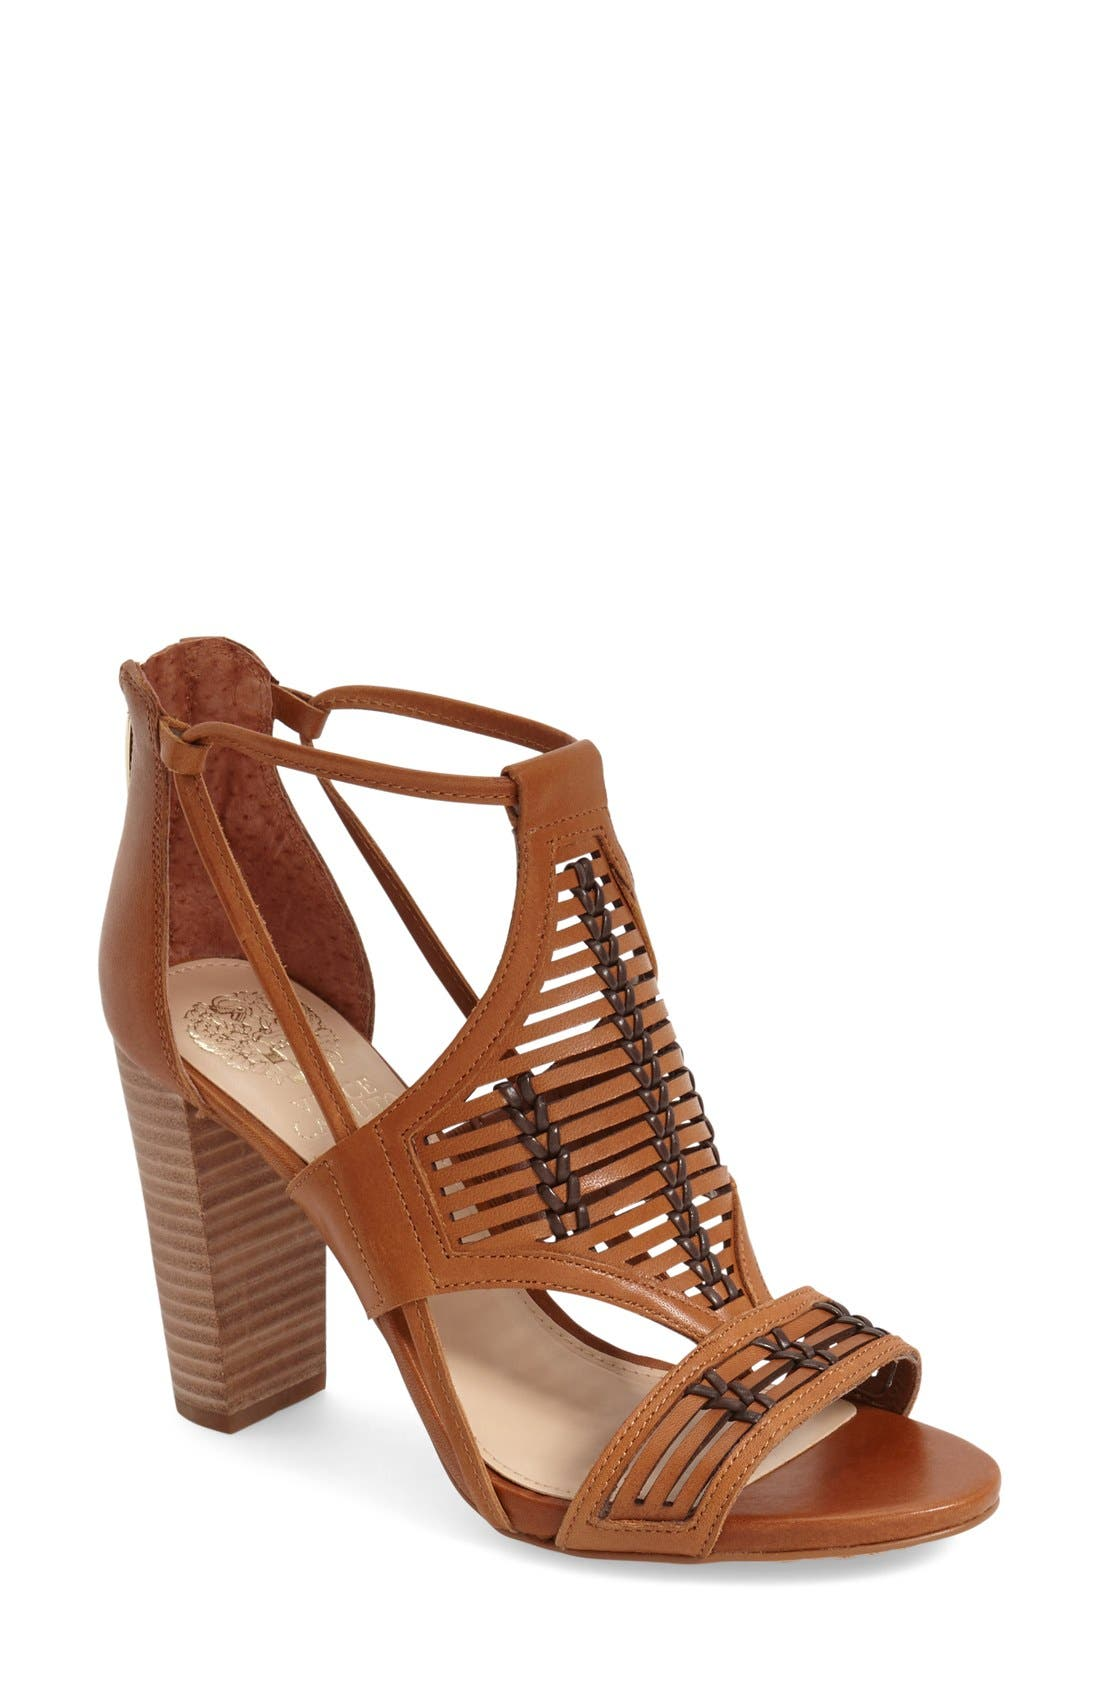 Alternate Image 1 Selected - Vince Camuto 'Ceara' Sandal (Women)